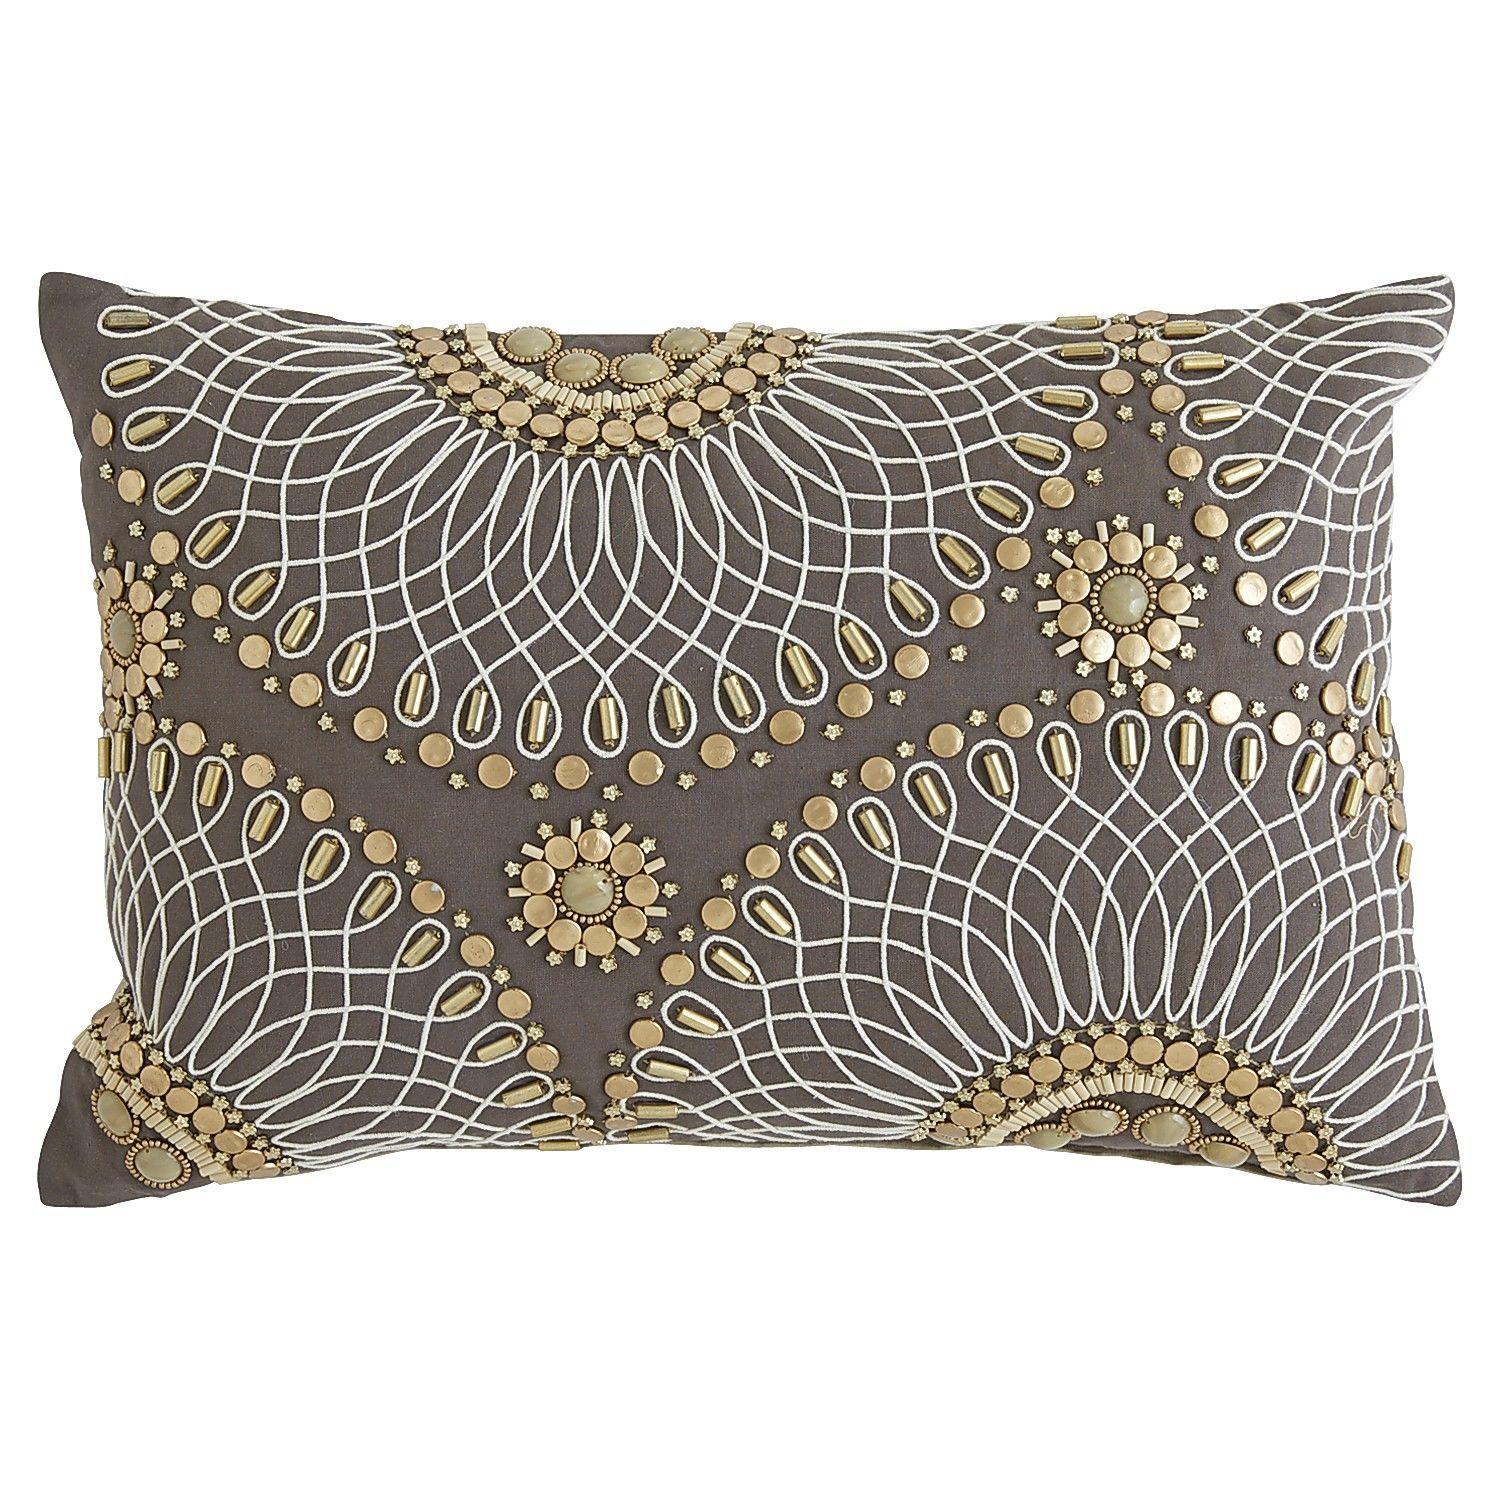 Beaded Accent Pillow Perfect Bedroom Addition Pillows Glam